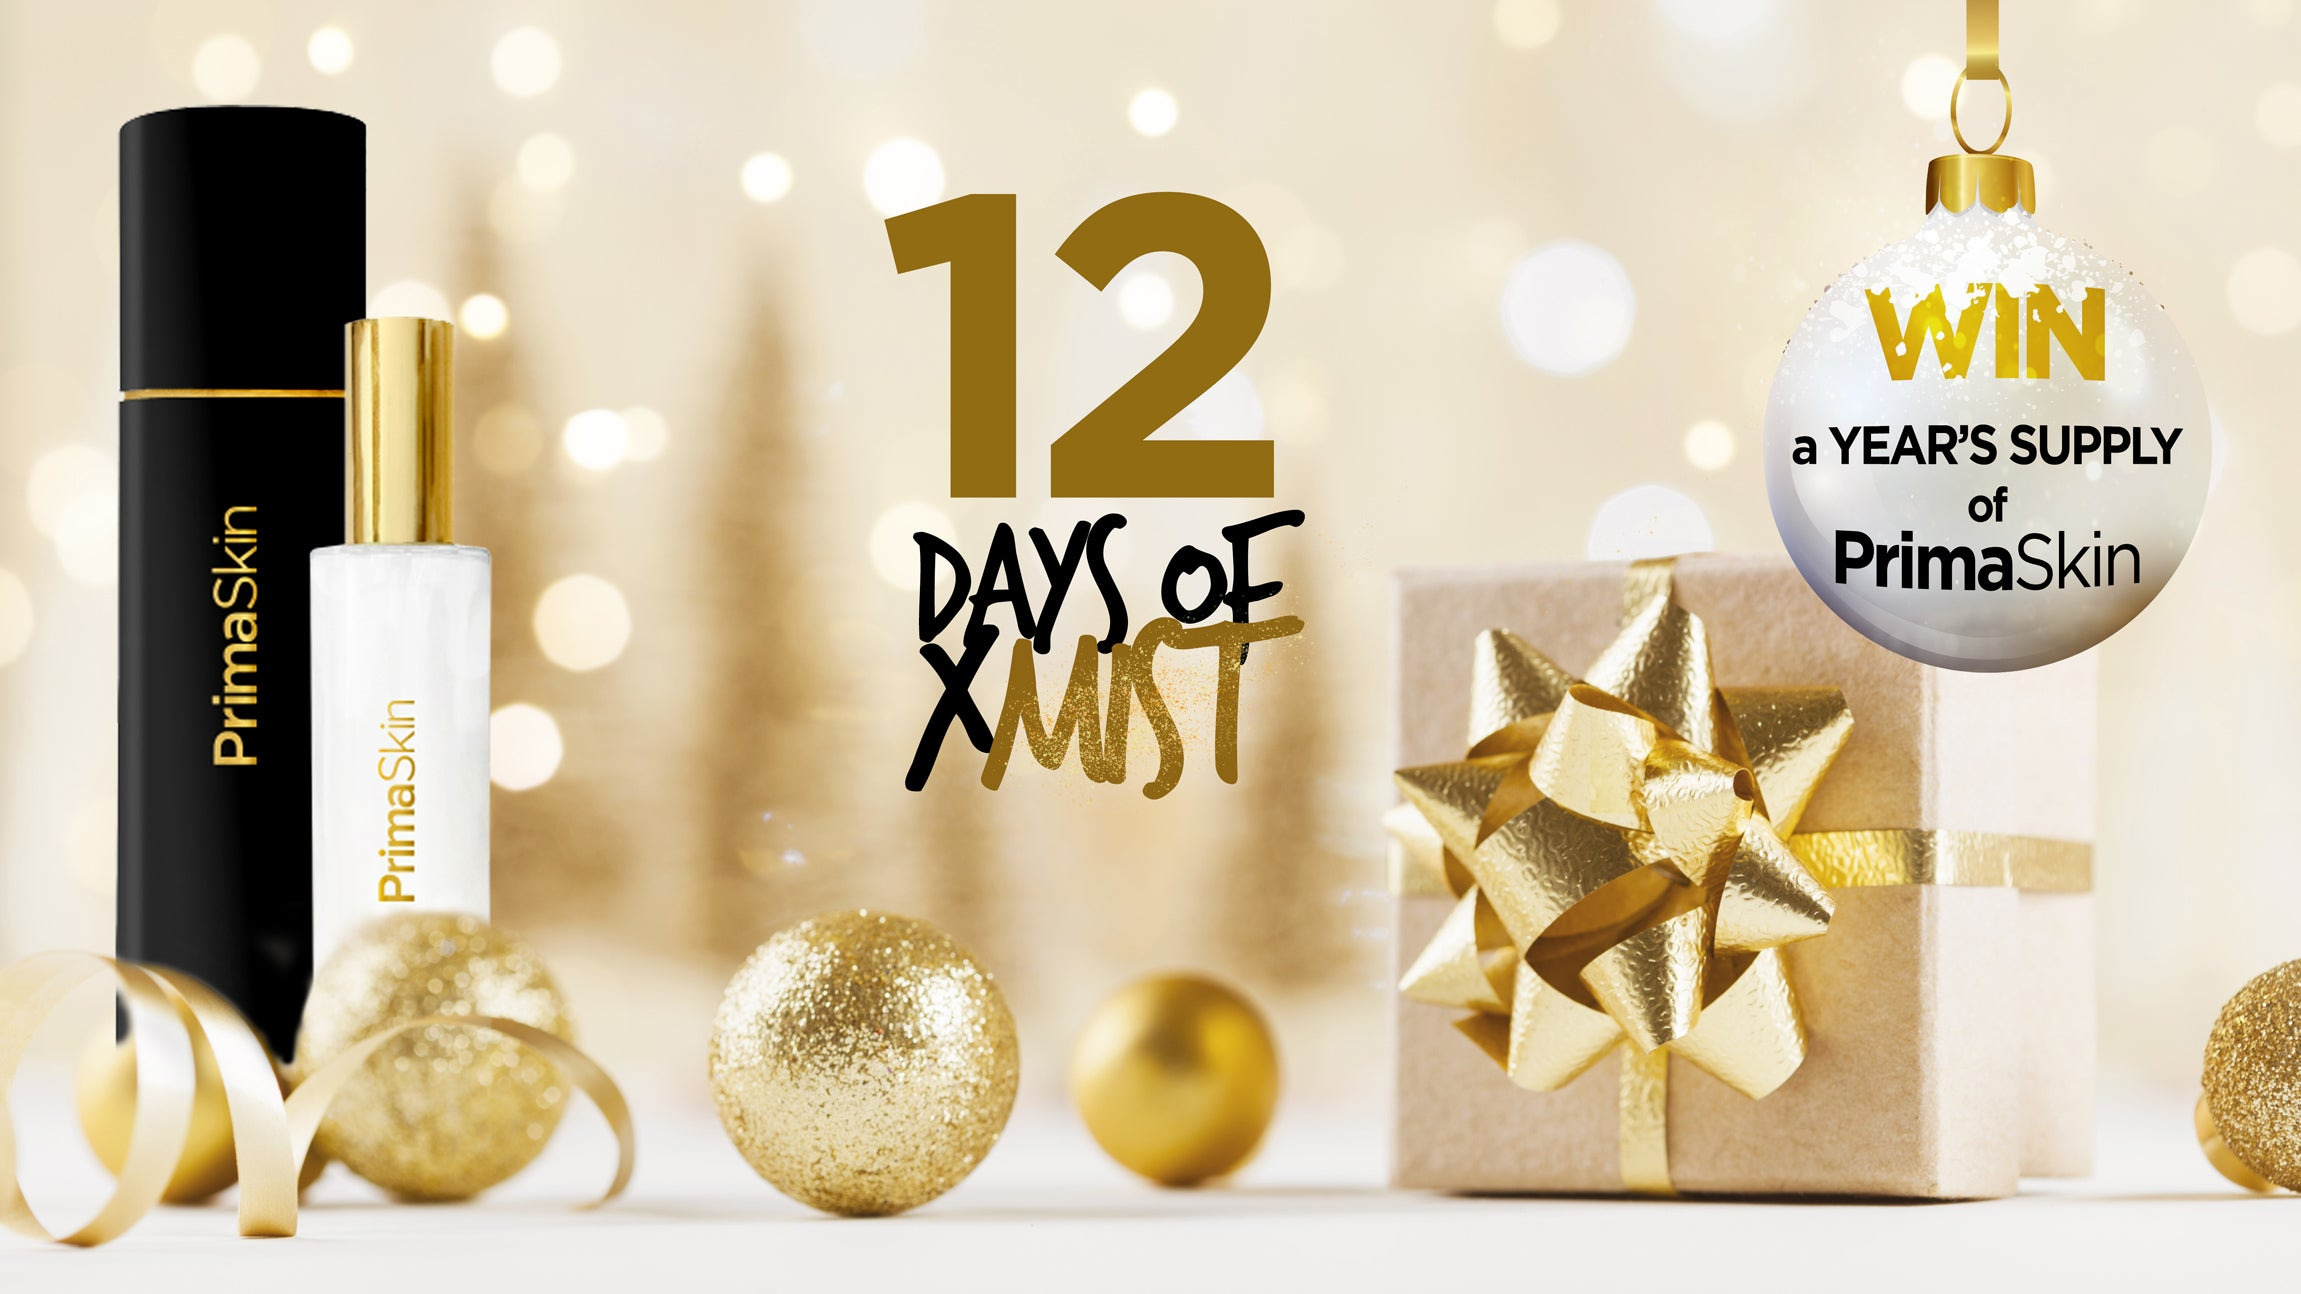 12 Days of Xmist Competition